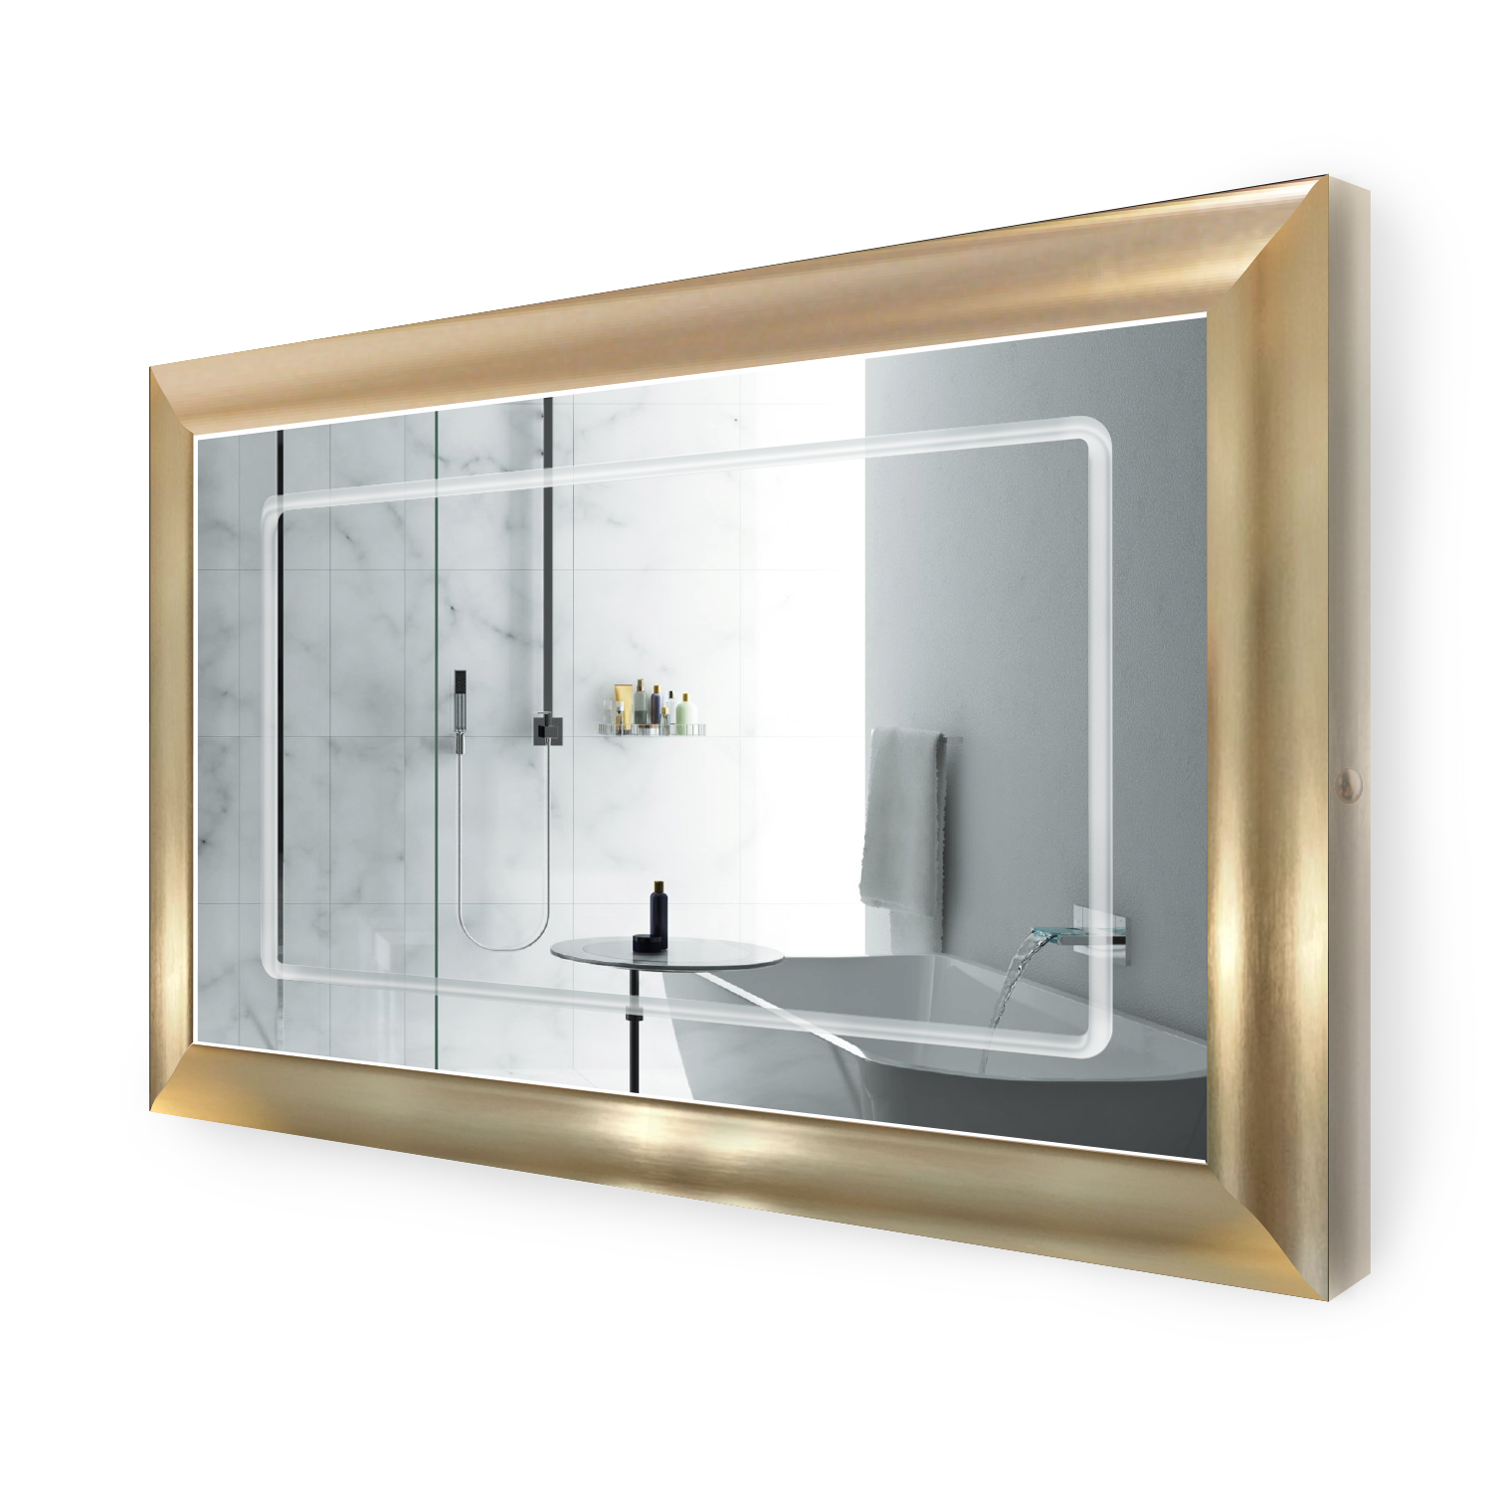 LED Lighted 48 Inch x 30 Inch Bathroom Gold Frame Mirror with Defogger